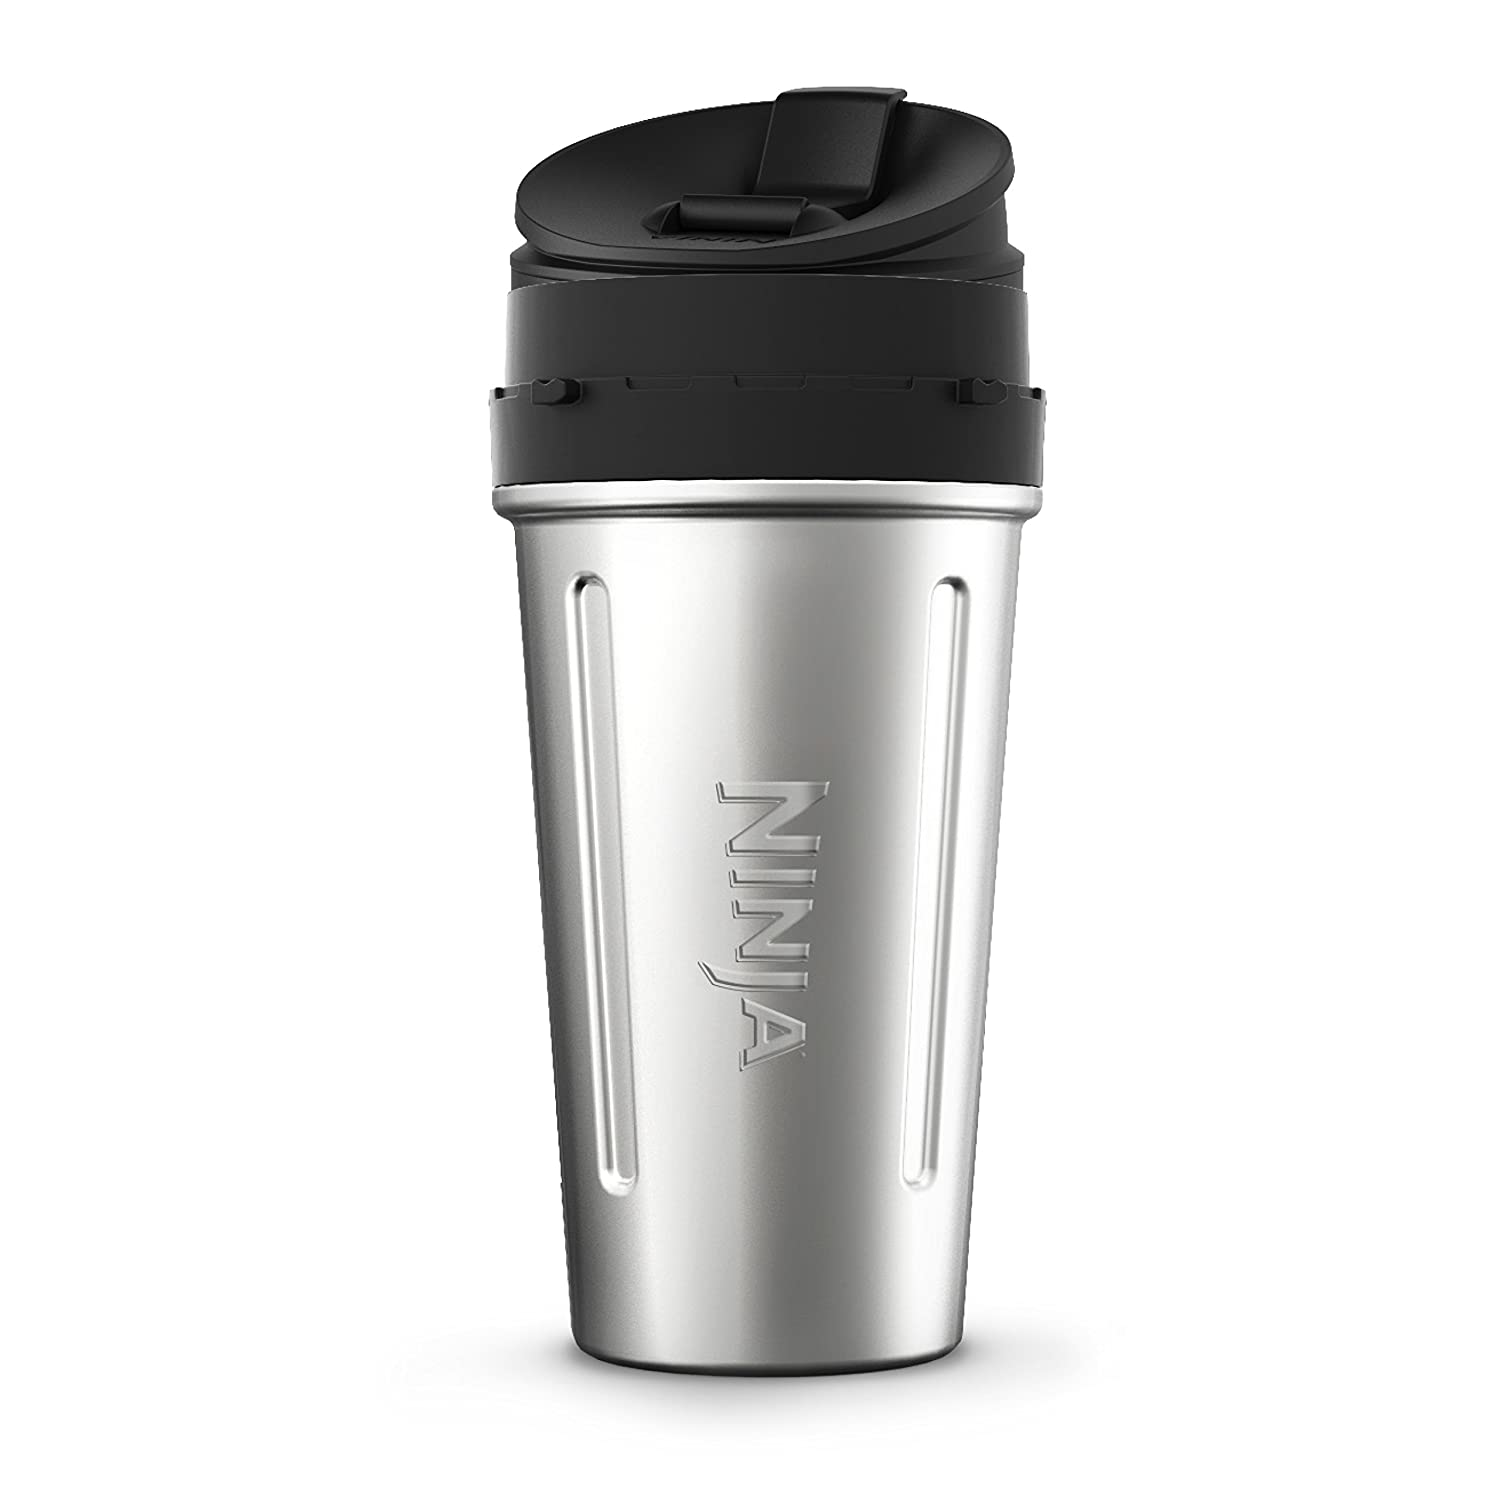 Ninja XSKDWSS24 Blenders - Accessories, 24 oz, Stainless Steel